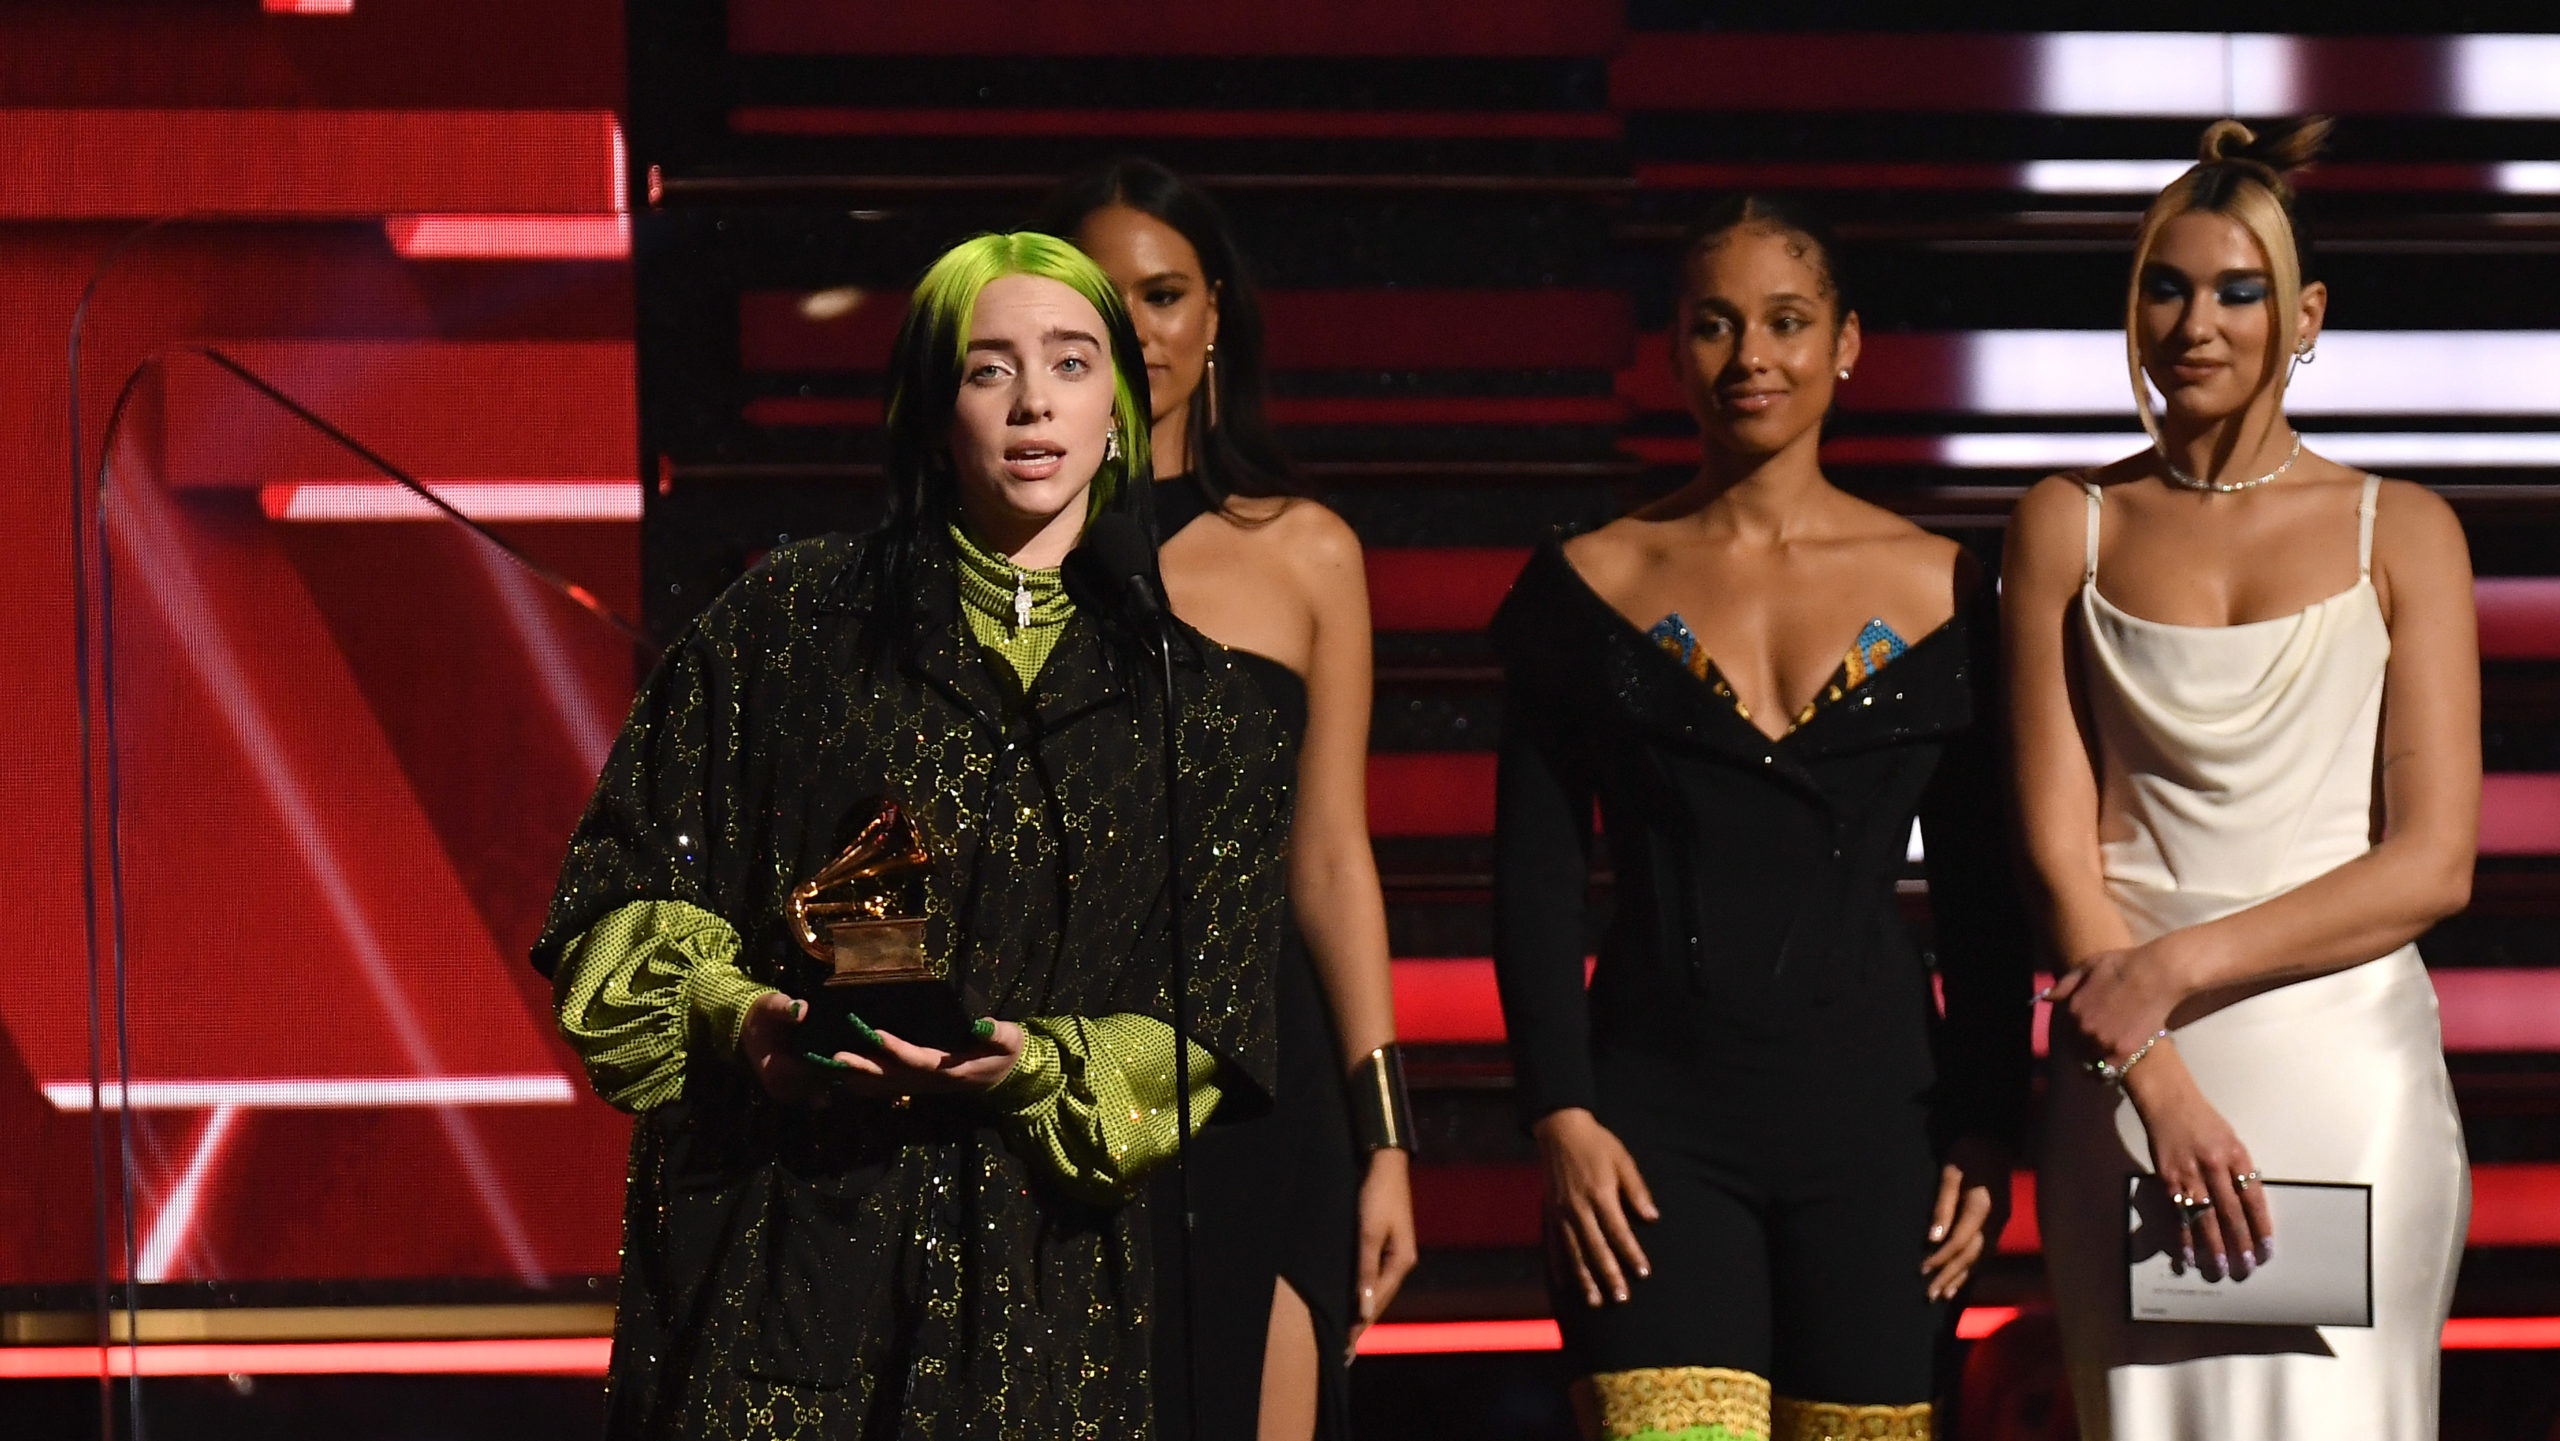 Billie Eilish And Lana Del Rey Awarded In 2020 NME Awards